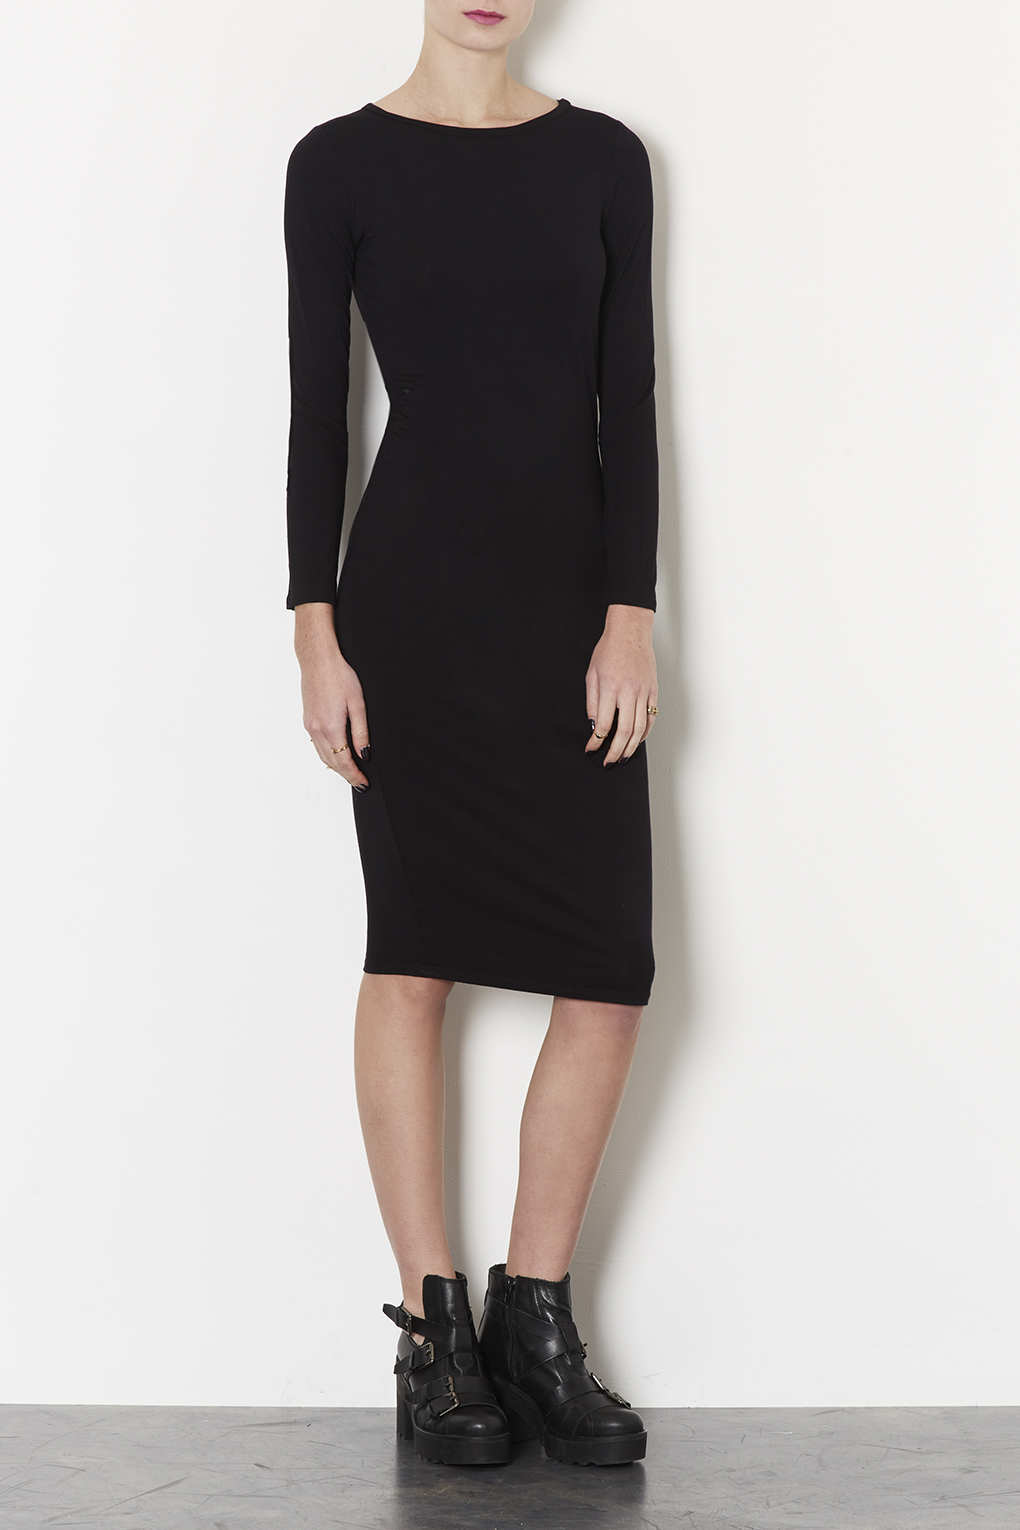 Topshop Petite Midi Bodycon Dress In Black Lyst